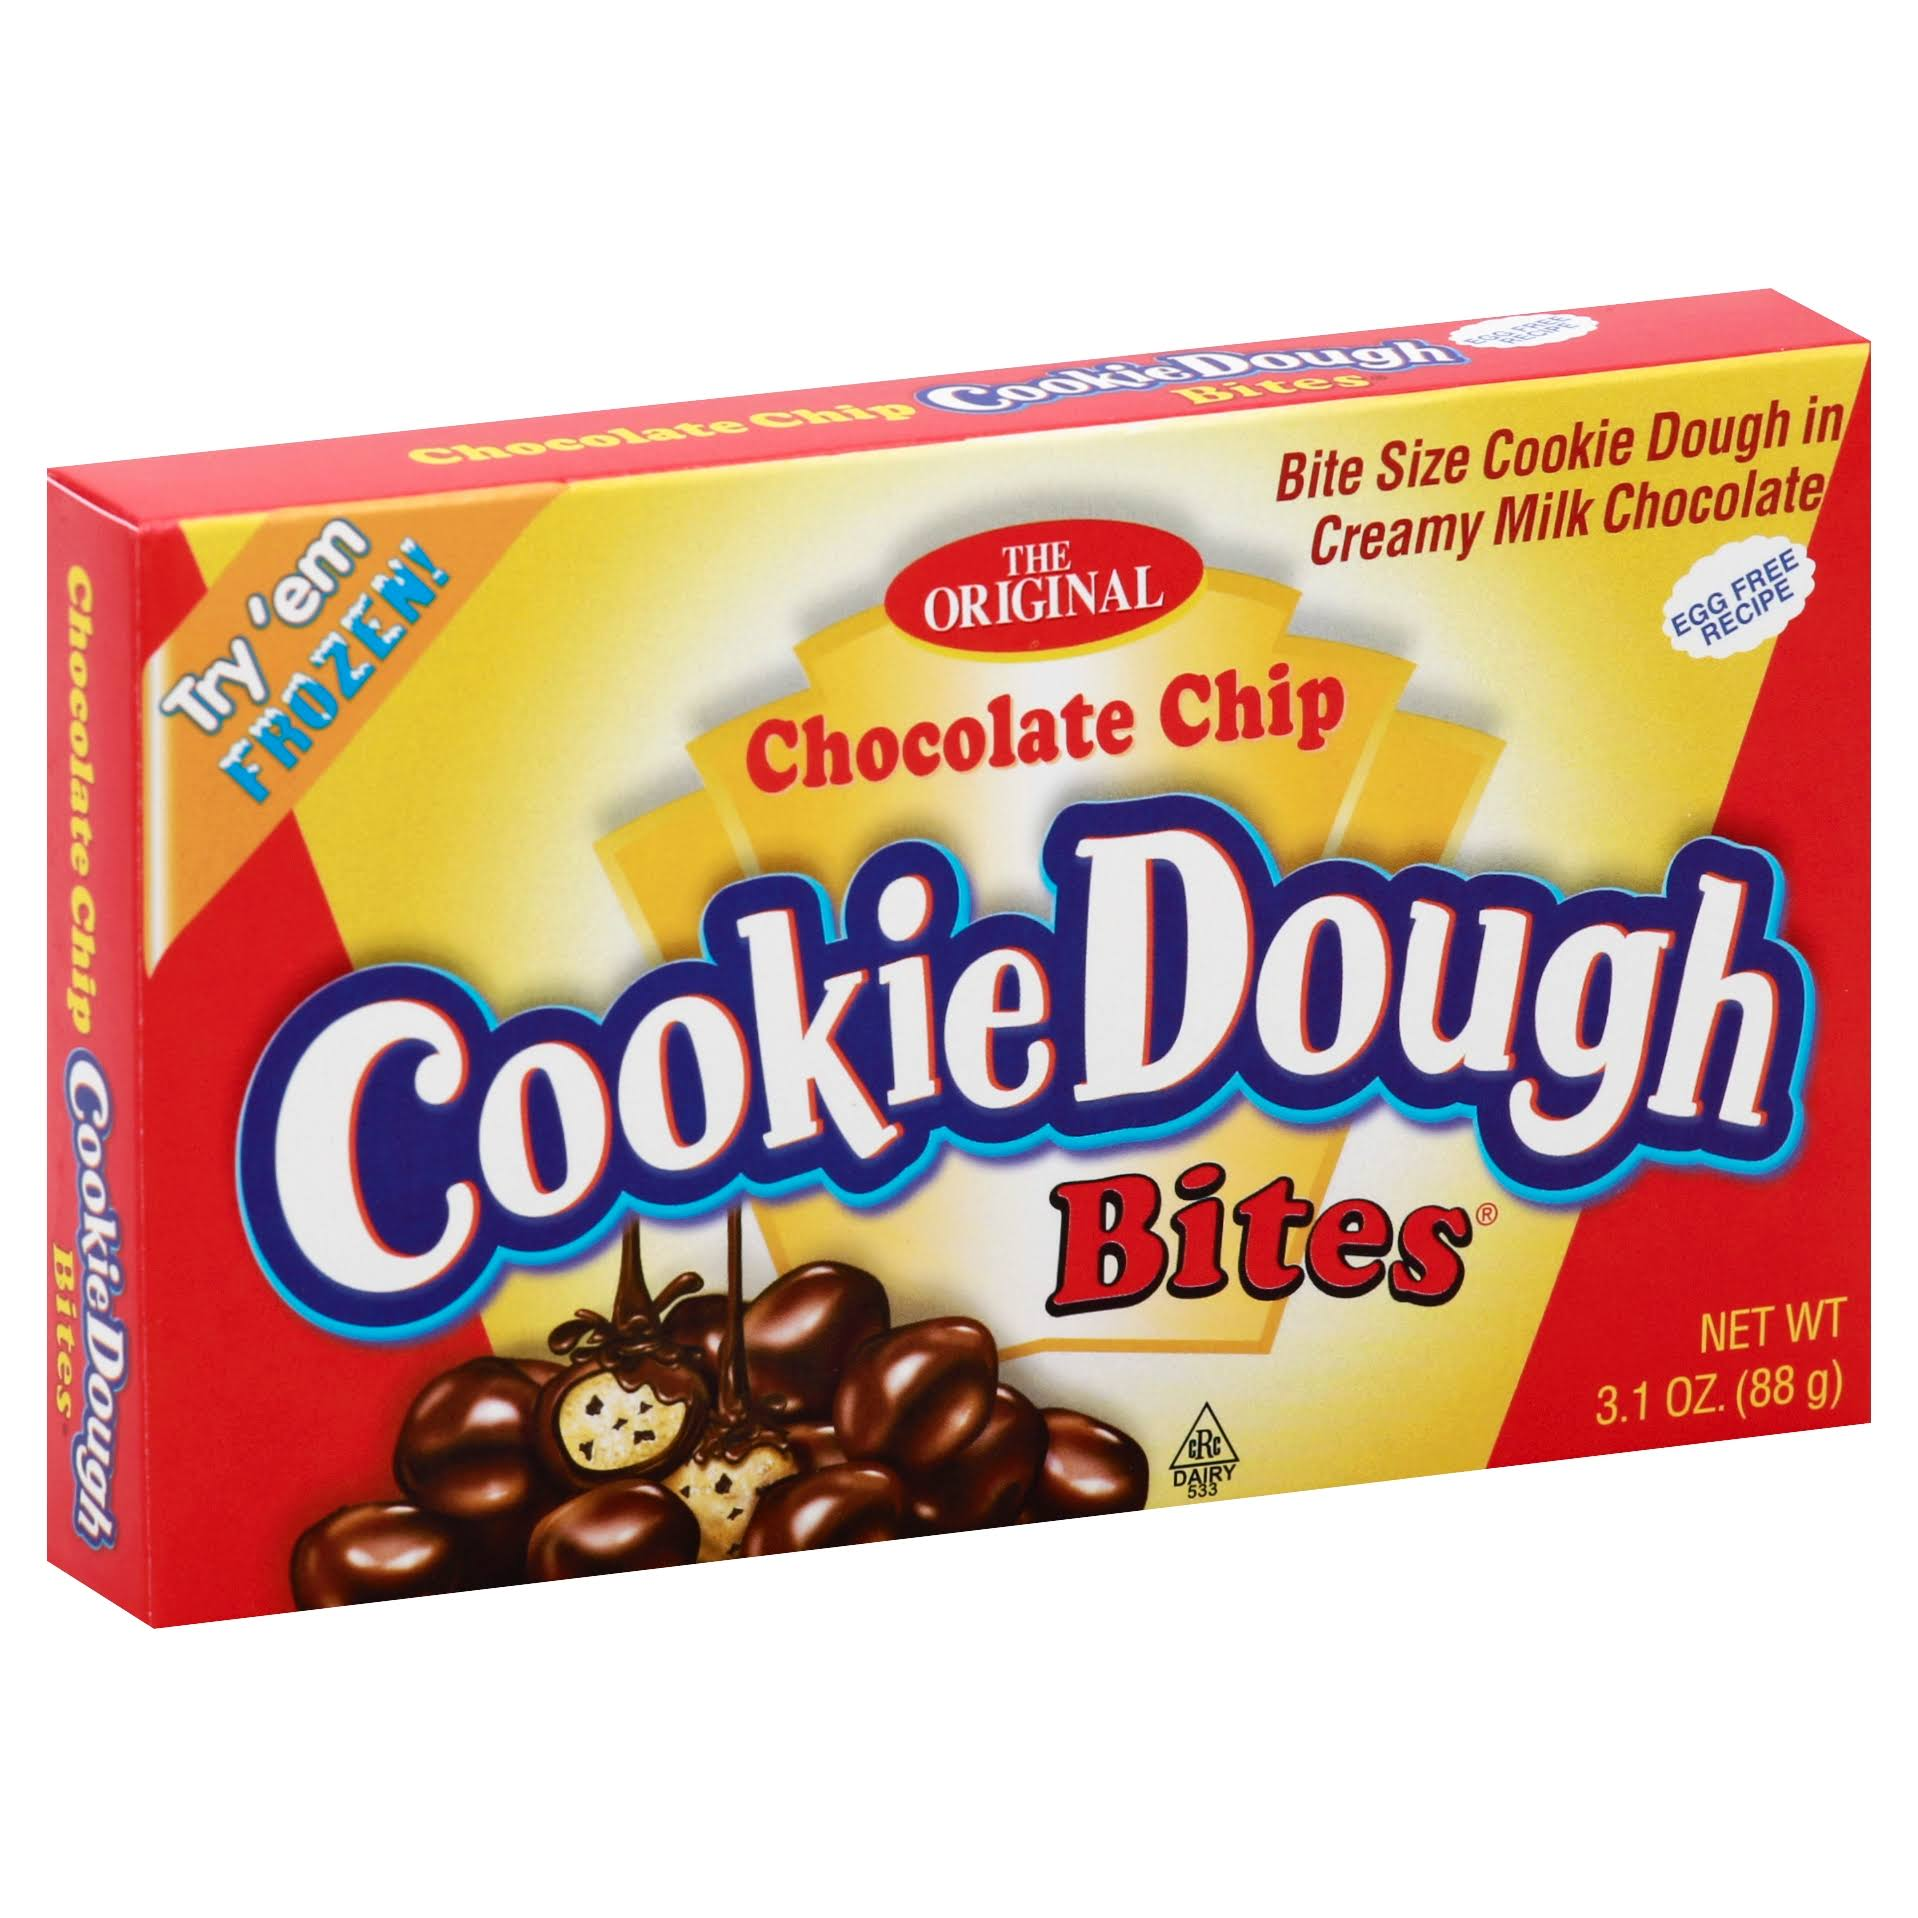 Cookie Dough Bites Chocolate Chip (88g)